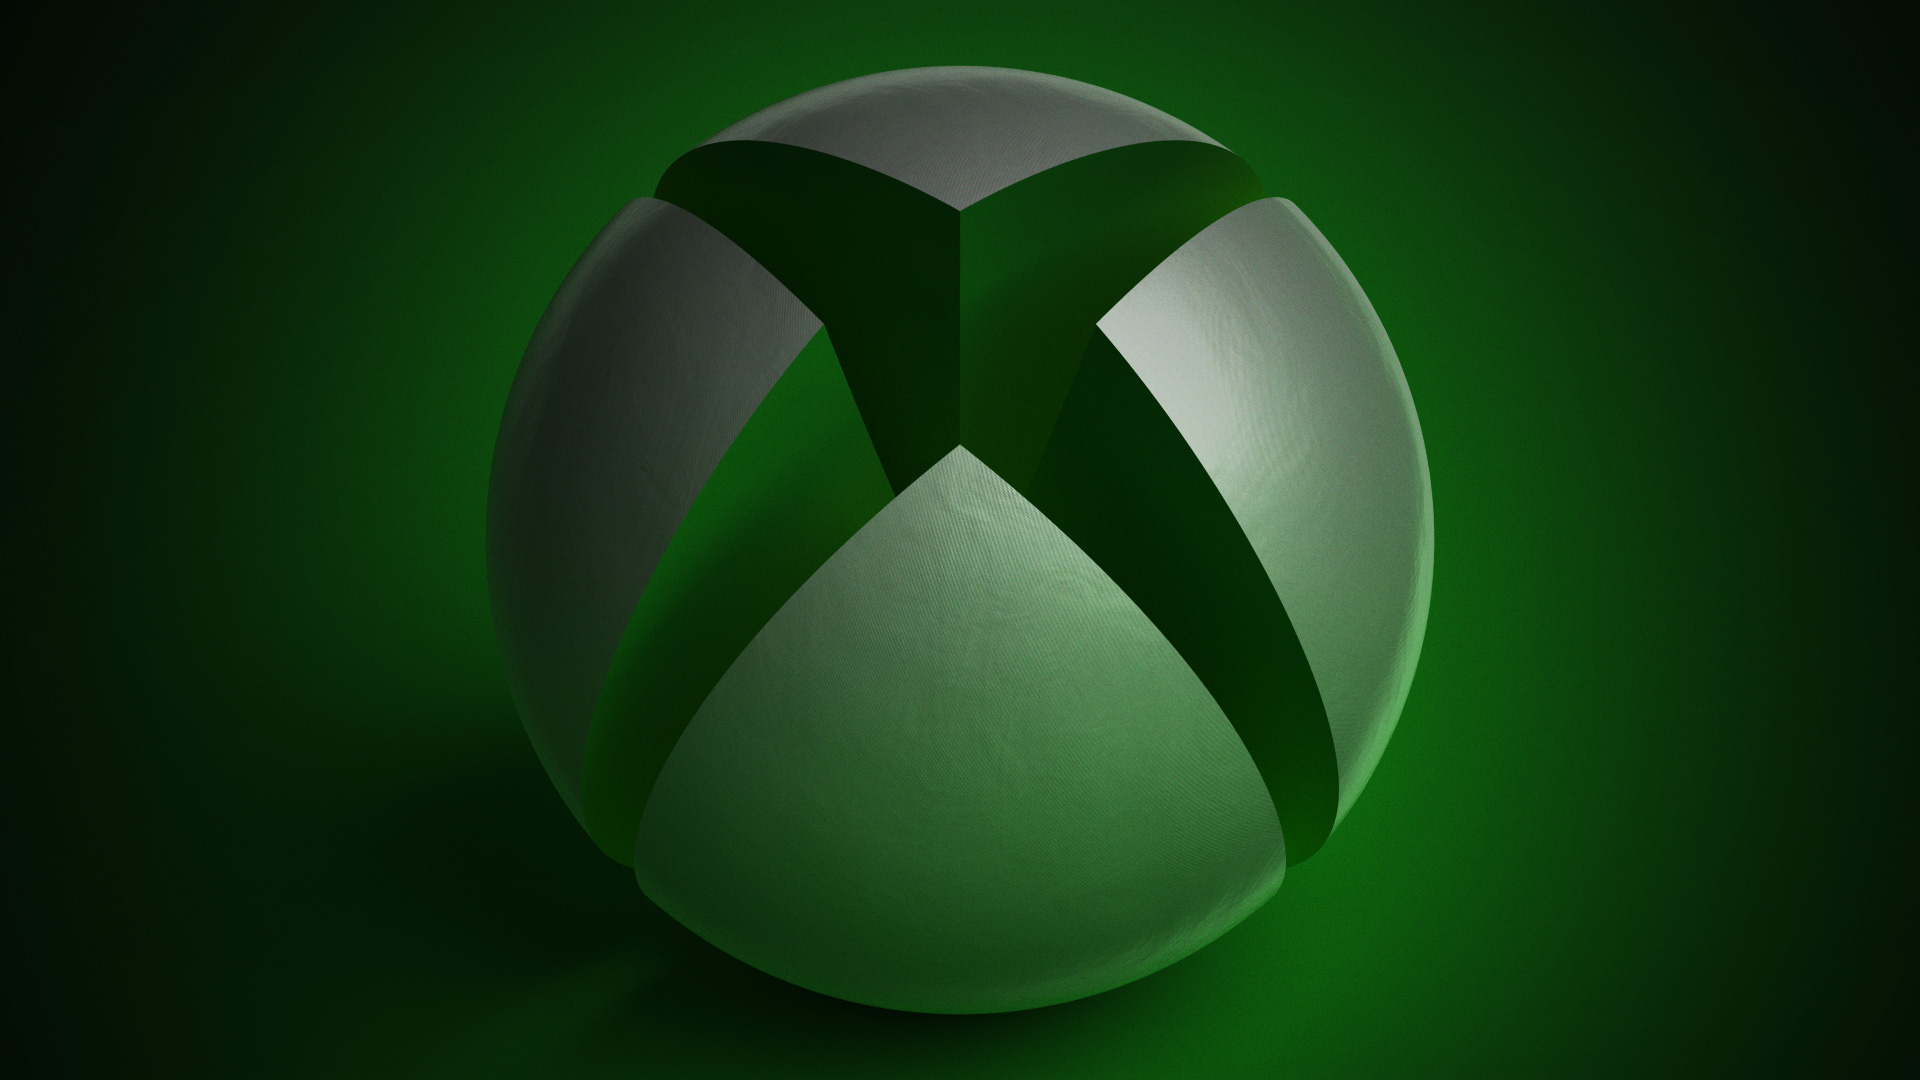 how to set up xbox to update when idle